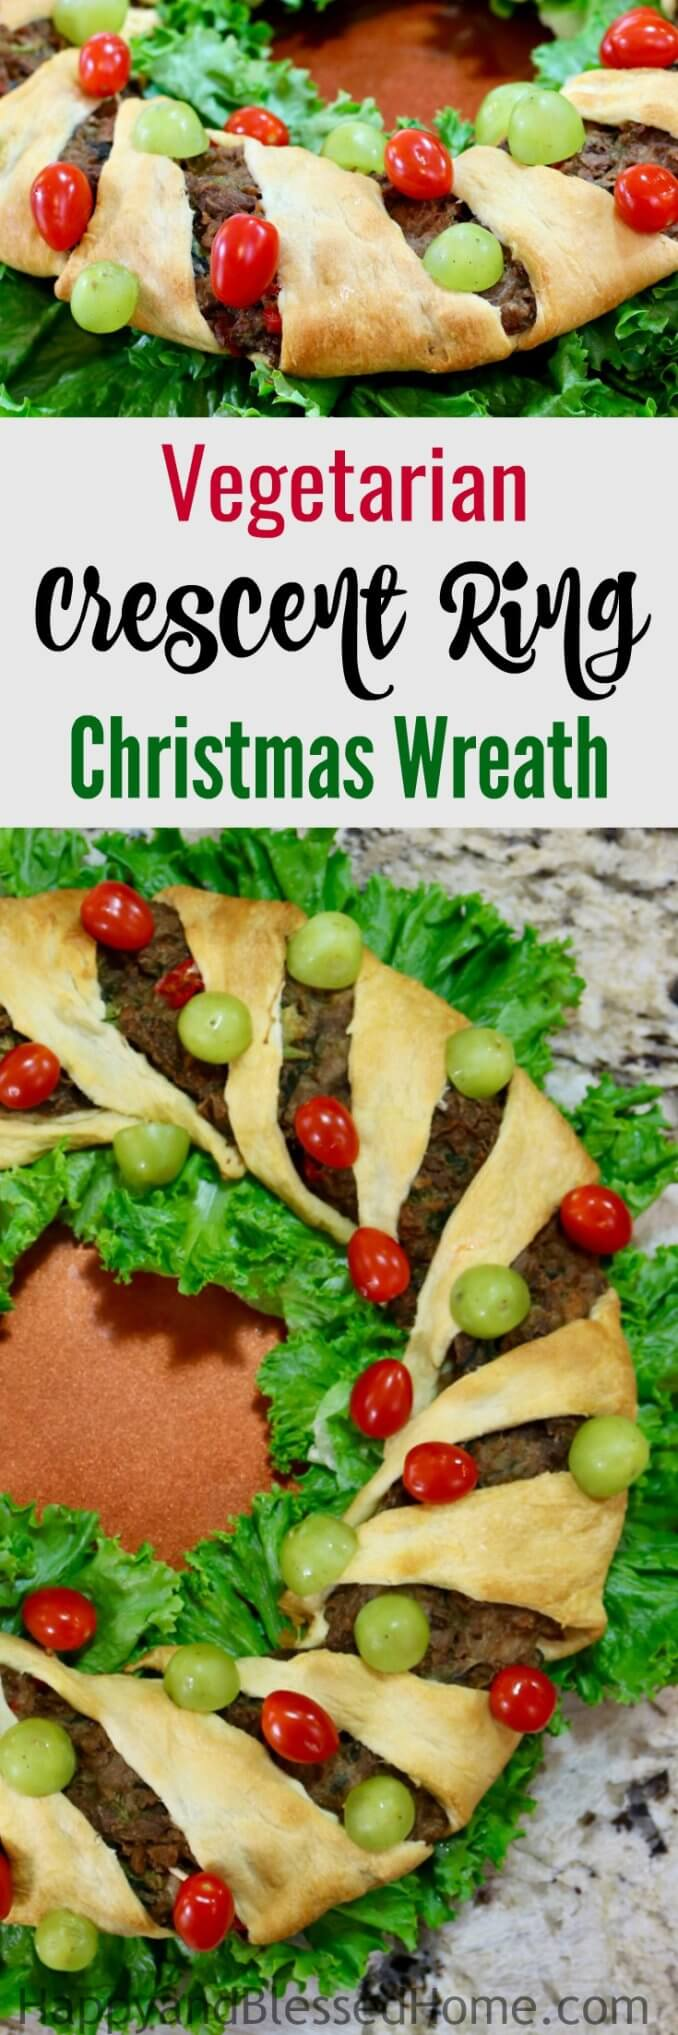 Easy Recipe Vegetarian Crescent Ring Christmas Wreath perfect for holiday entertaining